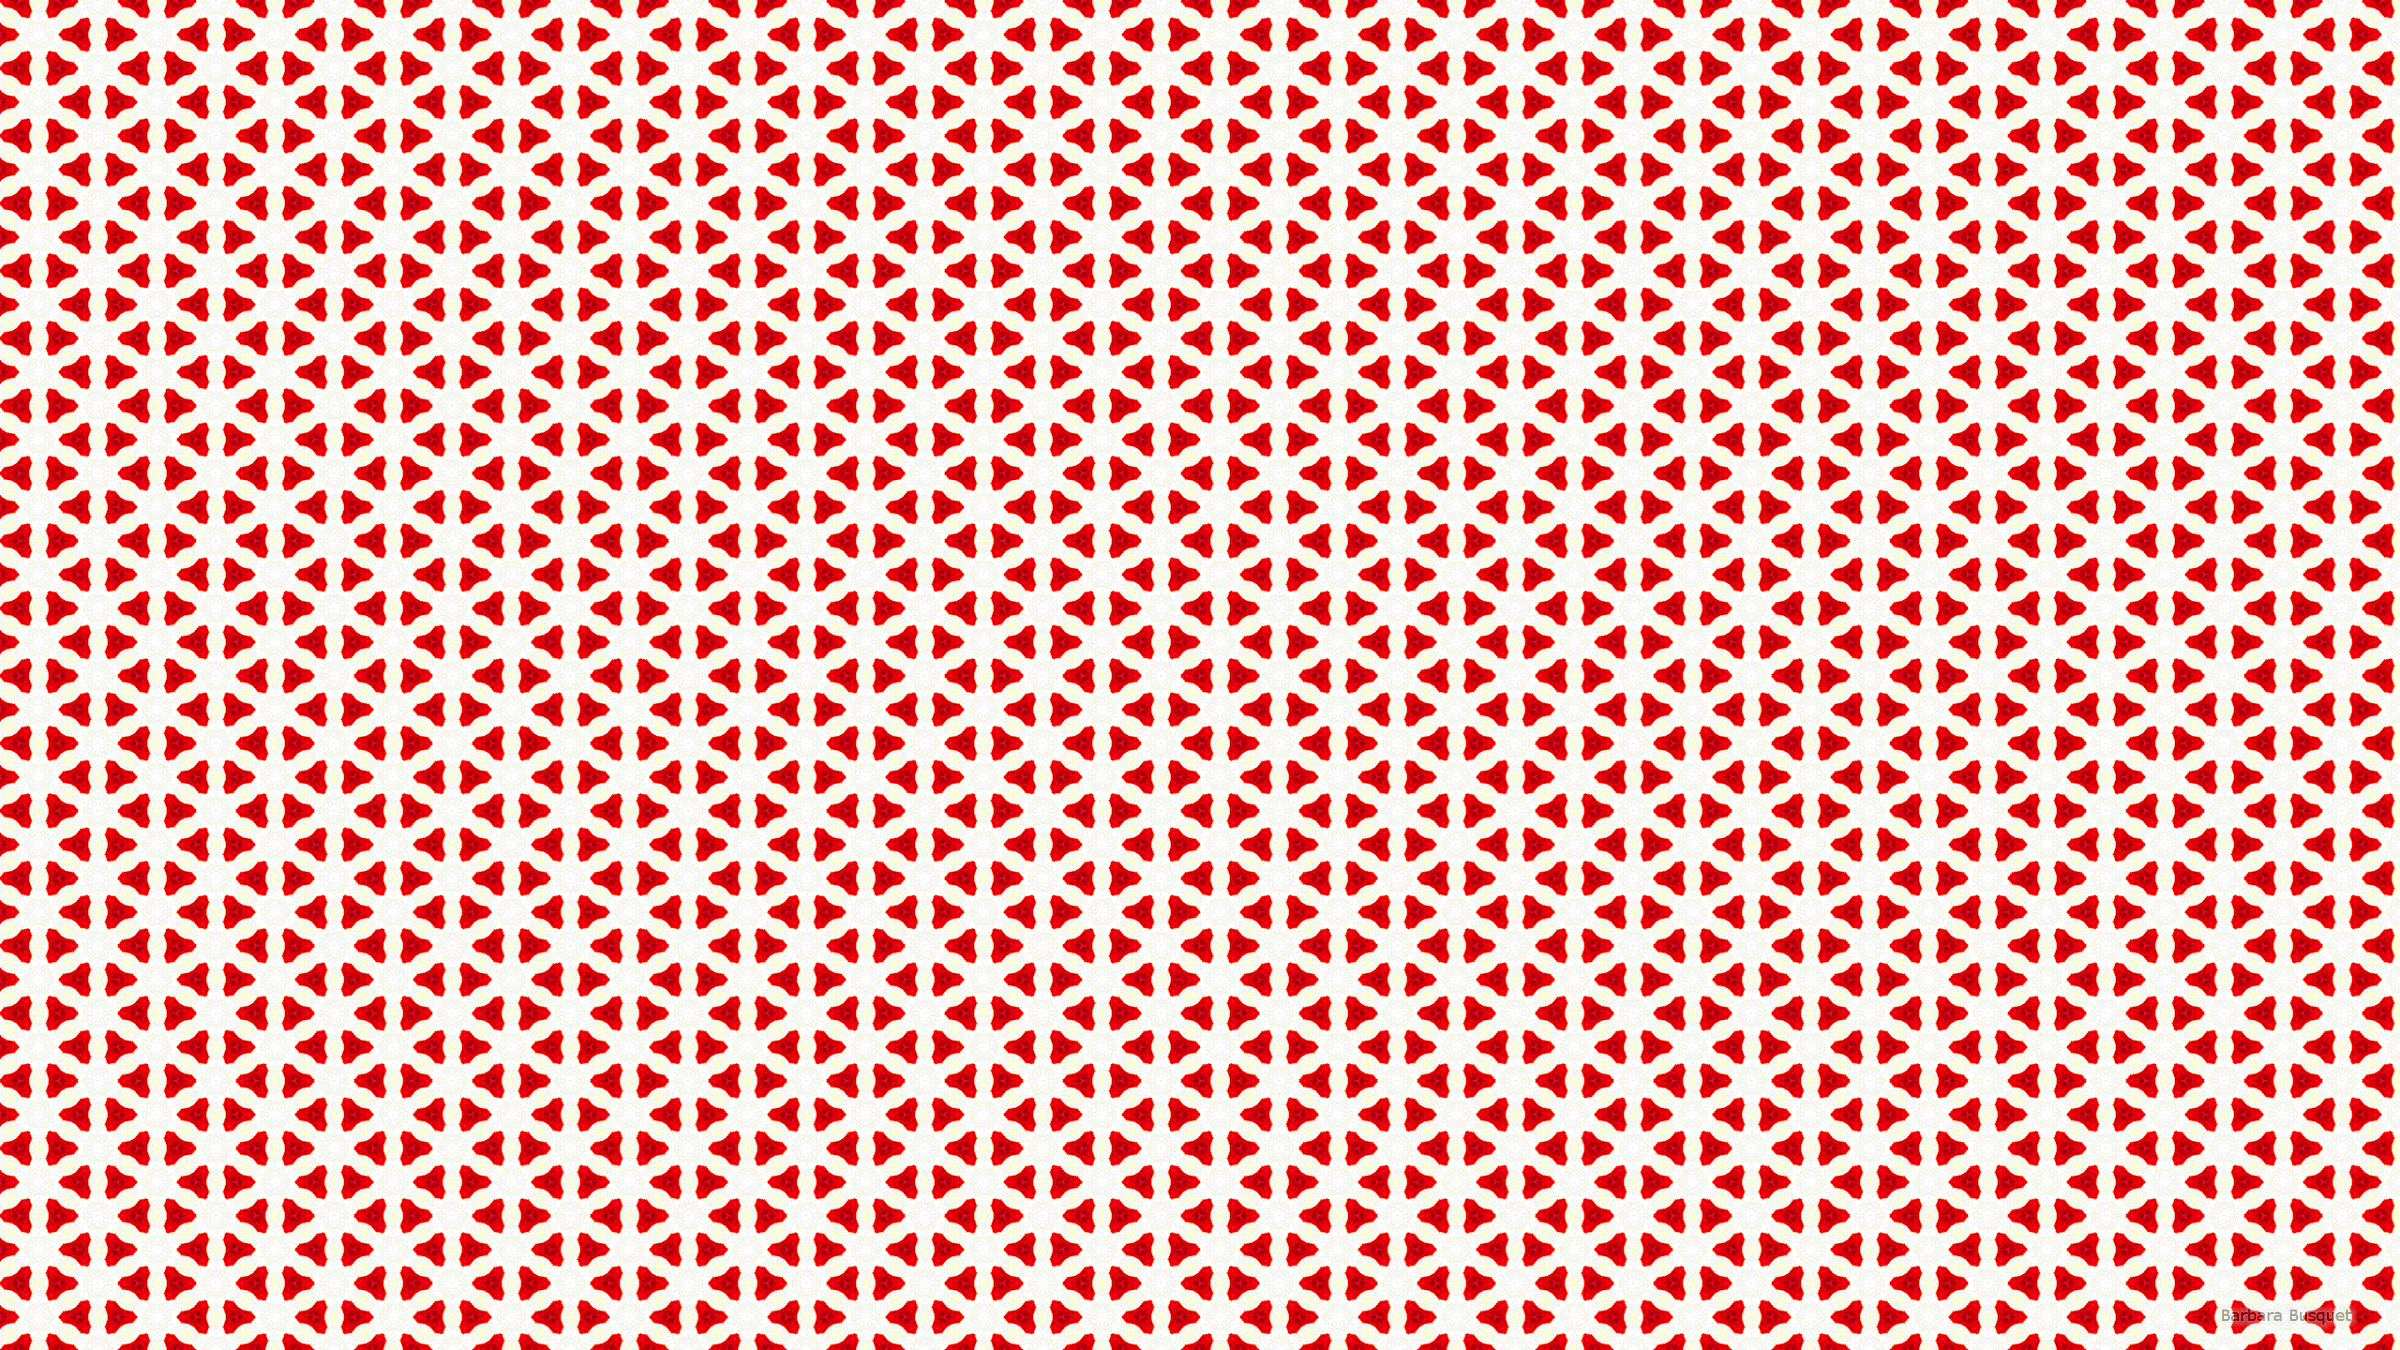 download red patterns wallpaper - photo #29